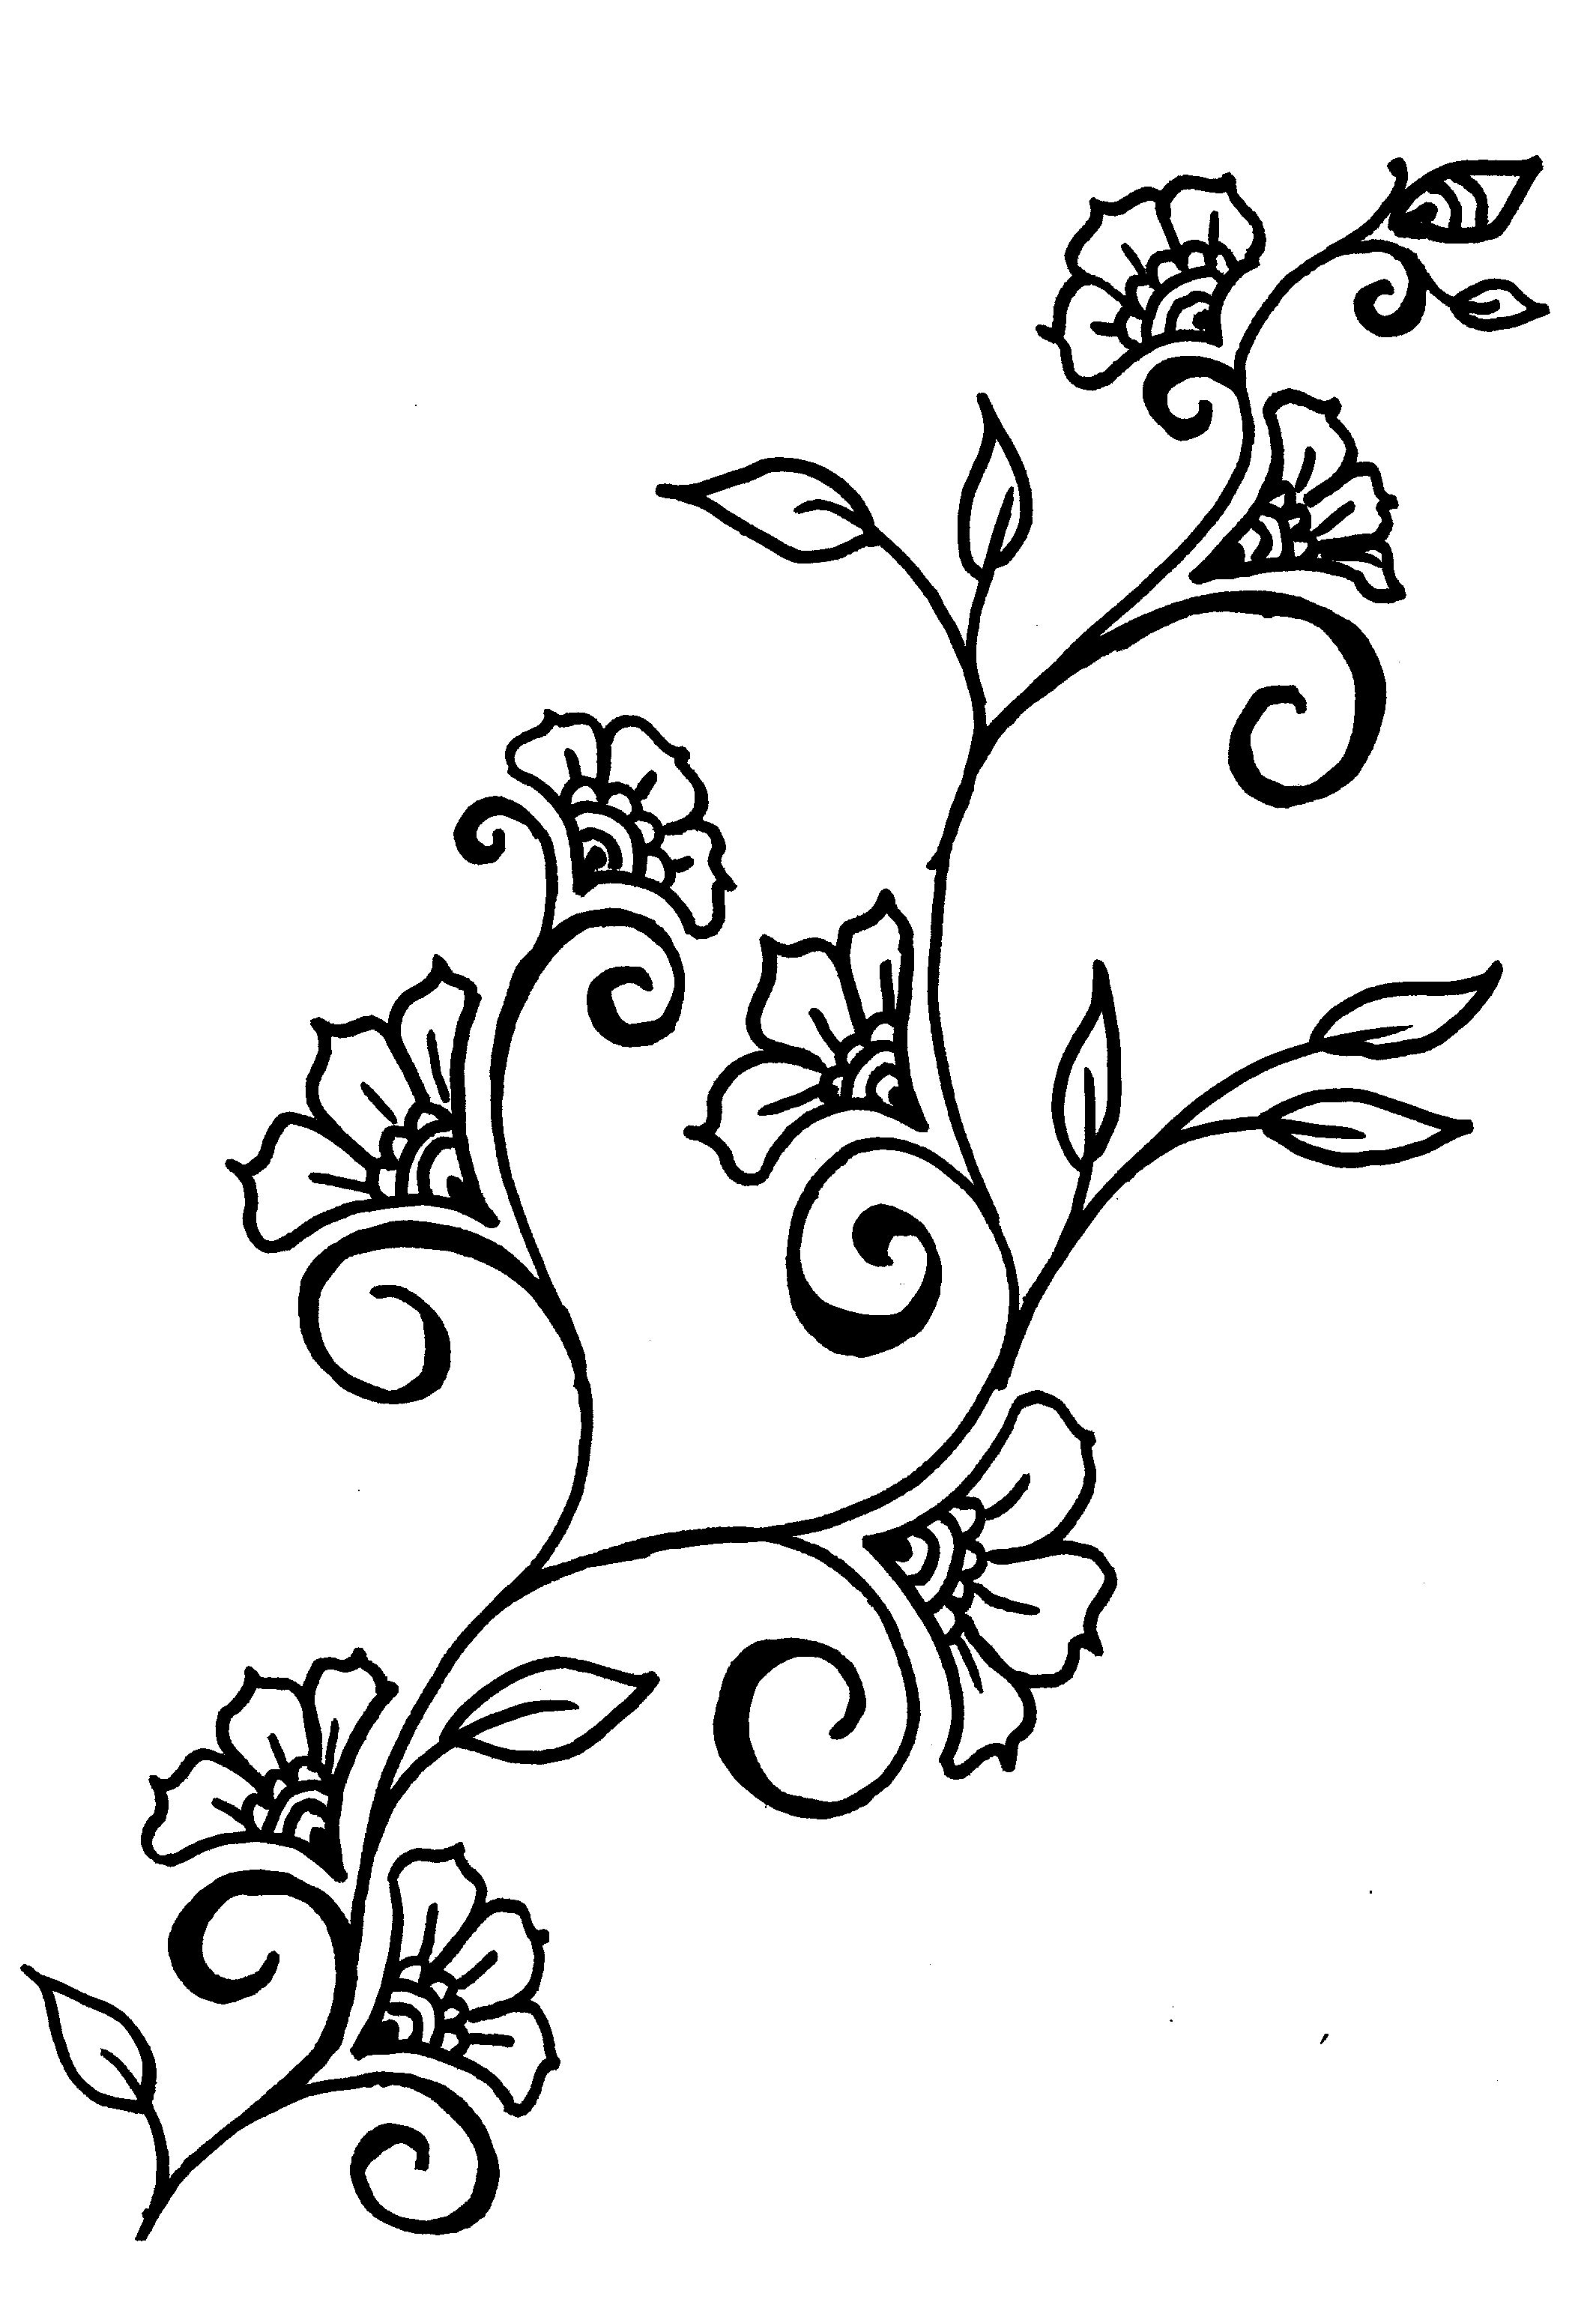 Uncategorized Easy Way To Draw Flowers drawings of rosd vines henna inspired design ideas leaves and flowers with drawings